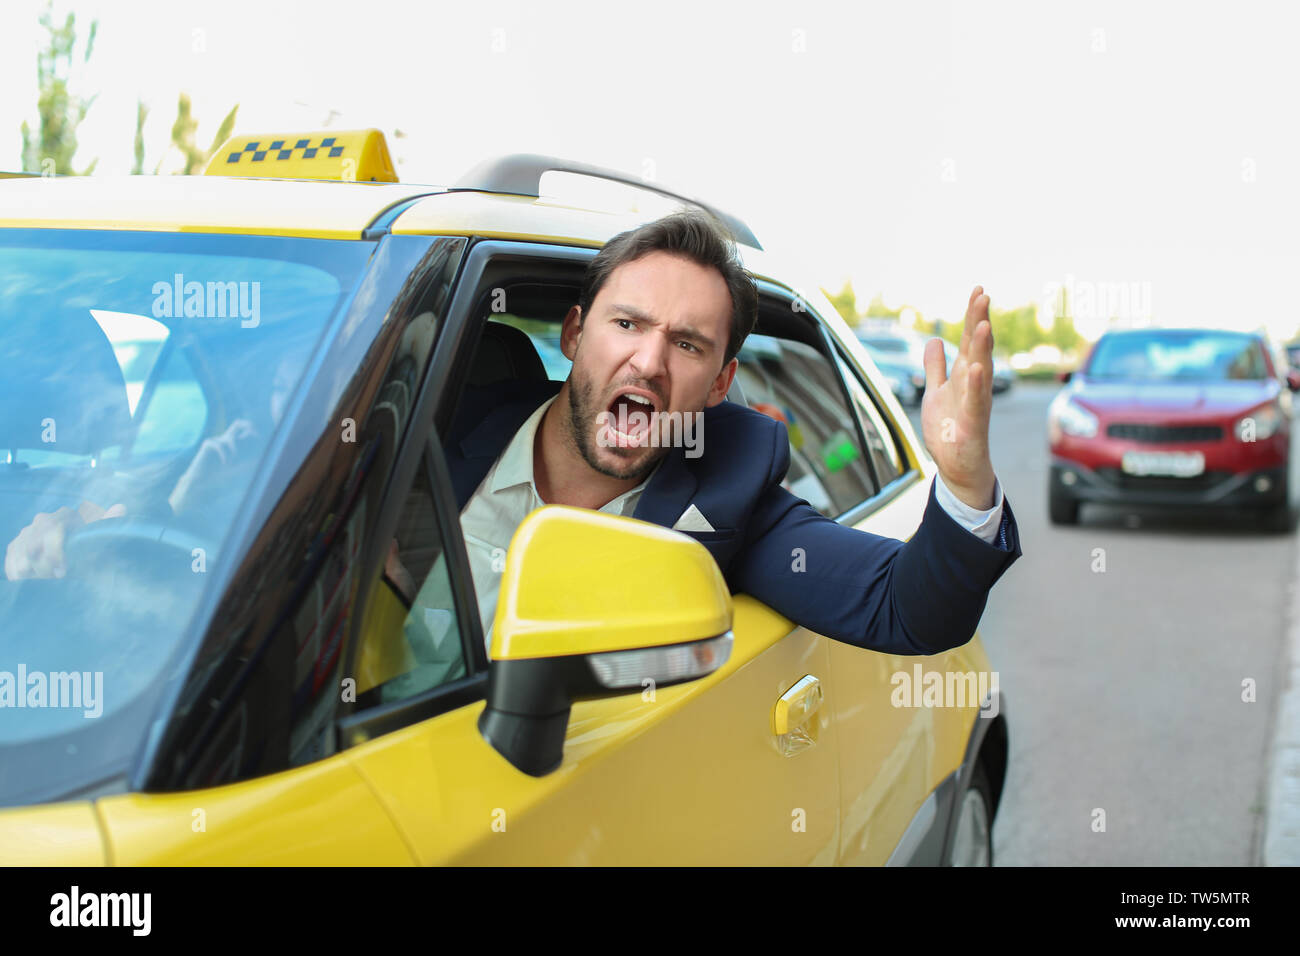 Emotional male taxi driver sitting in yellow car - Stock Image